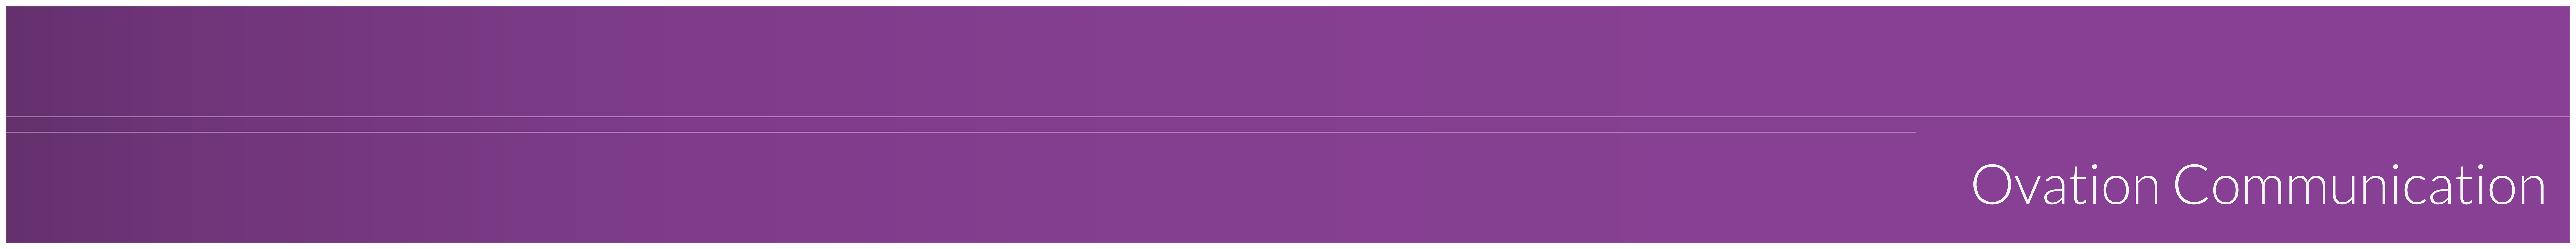 Blank_banner.png